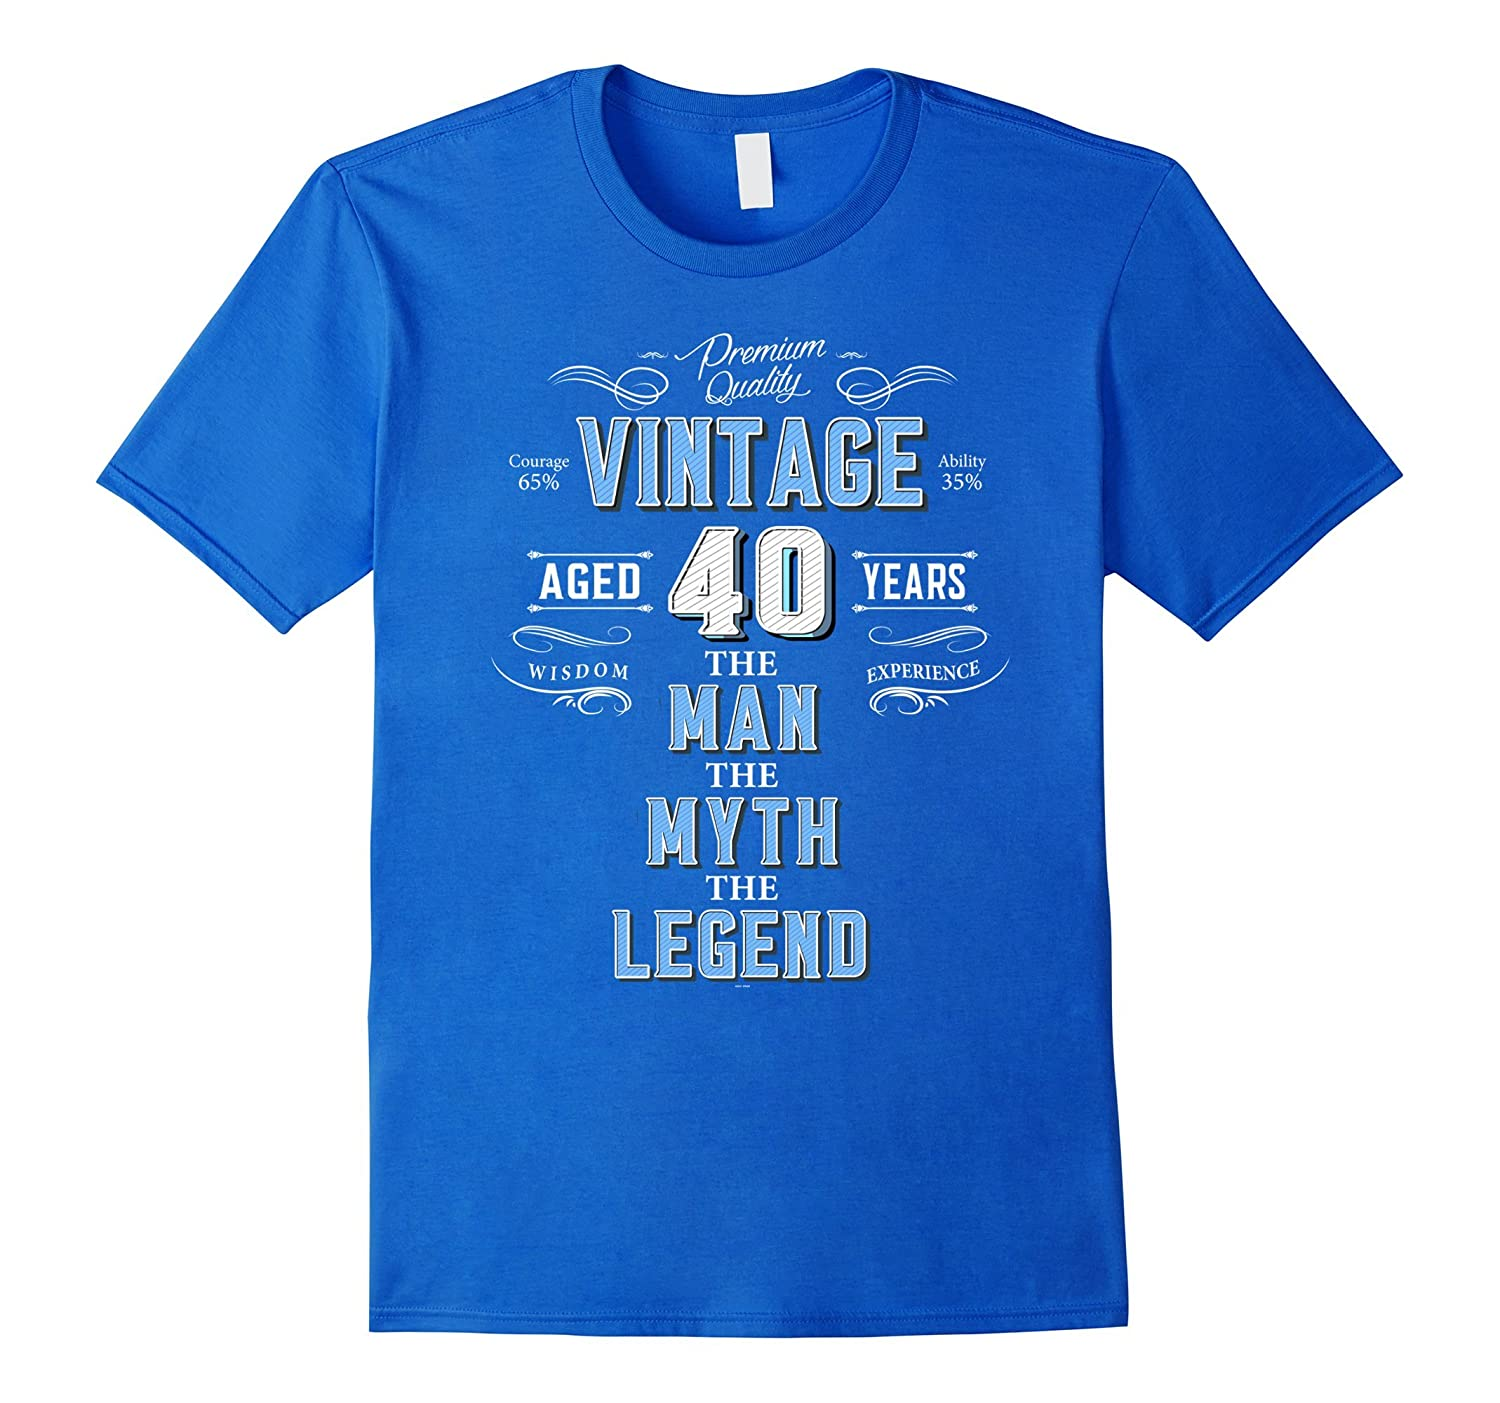 Mens Vintage 40th Birthday Tshirt For Men Aged 40 Years Old Tee